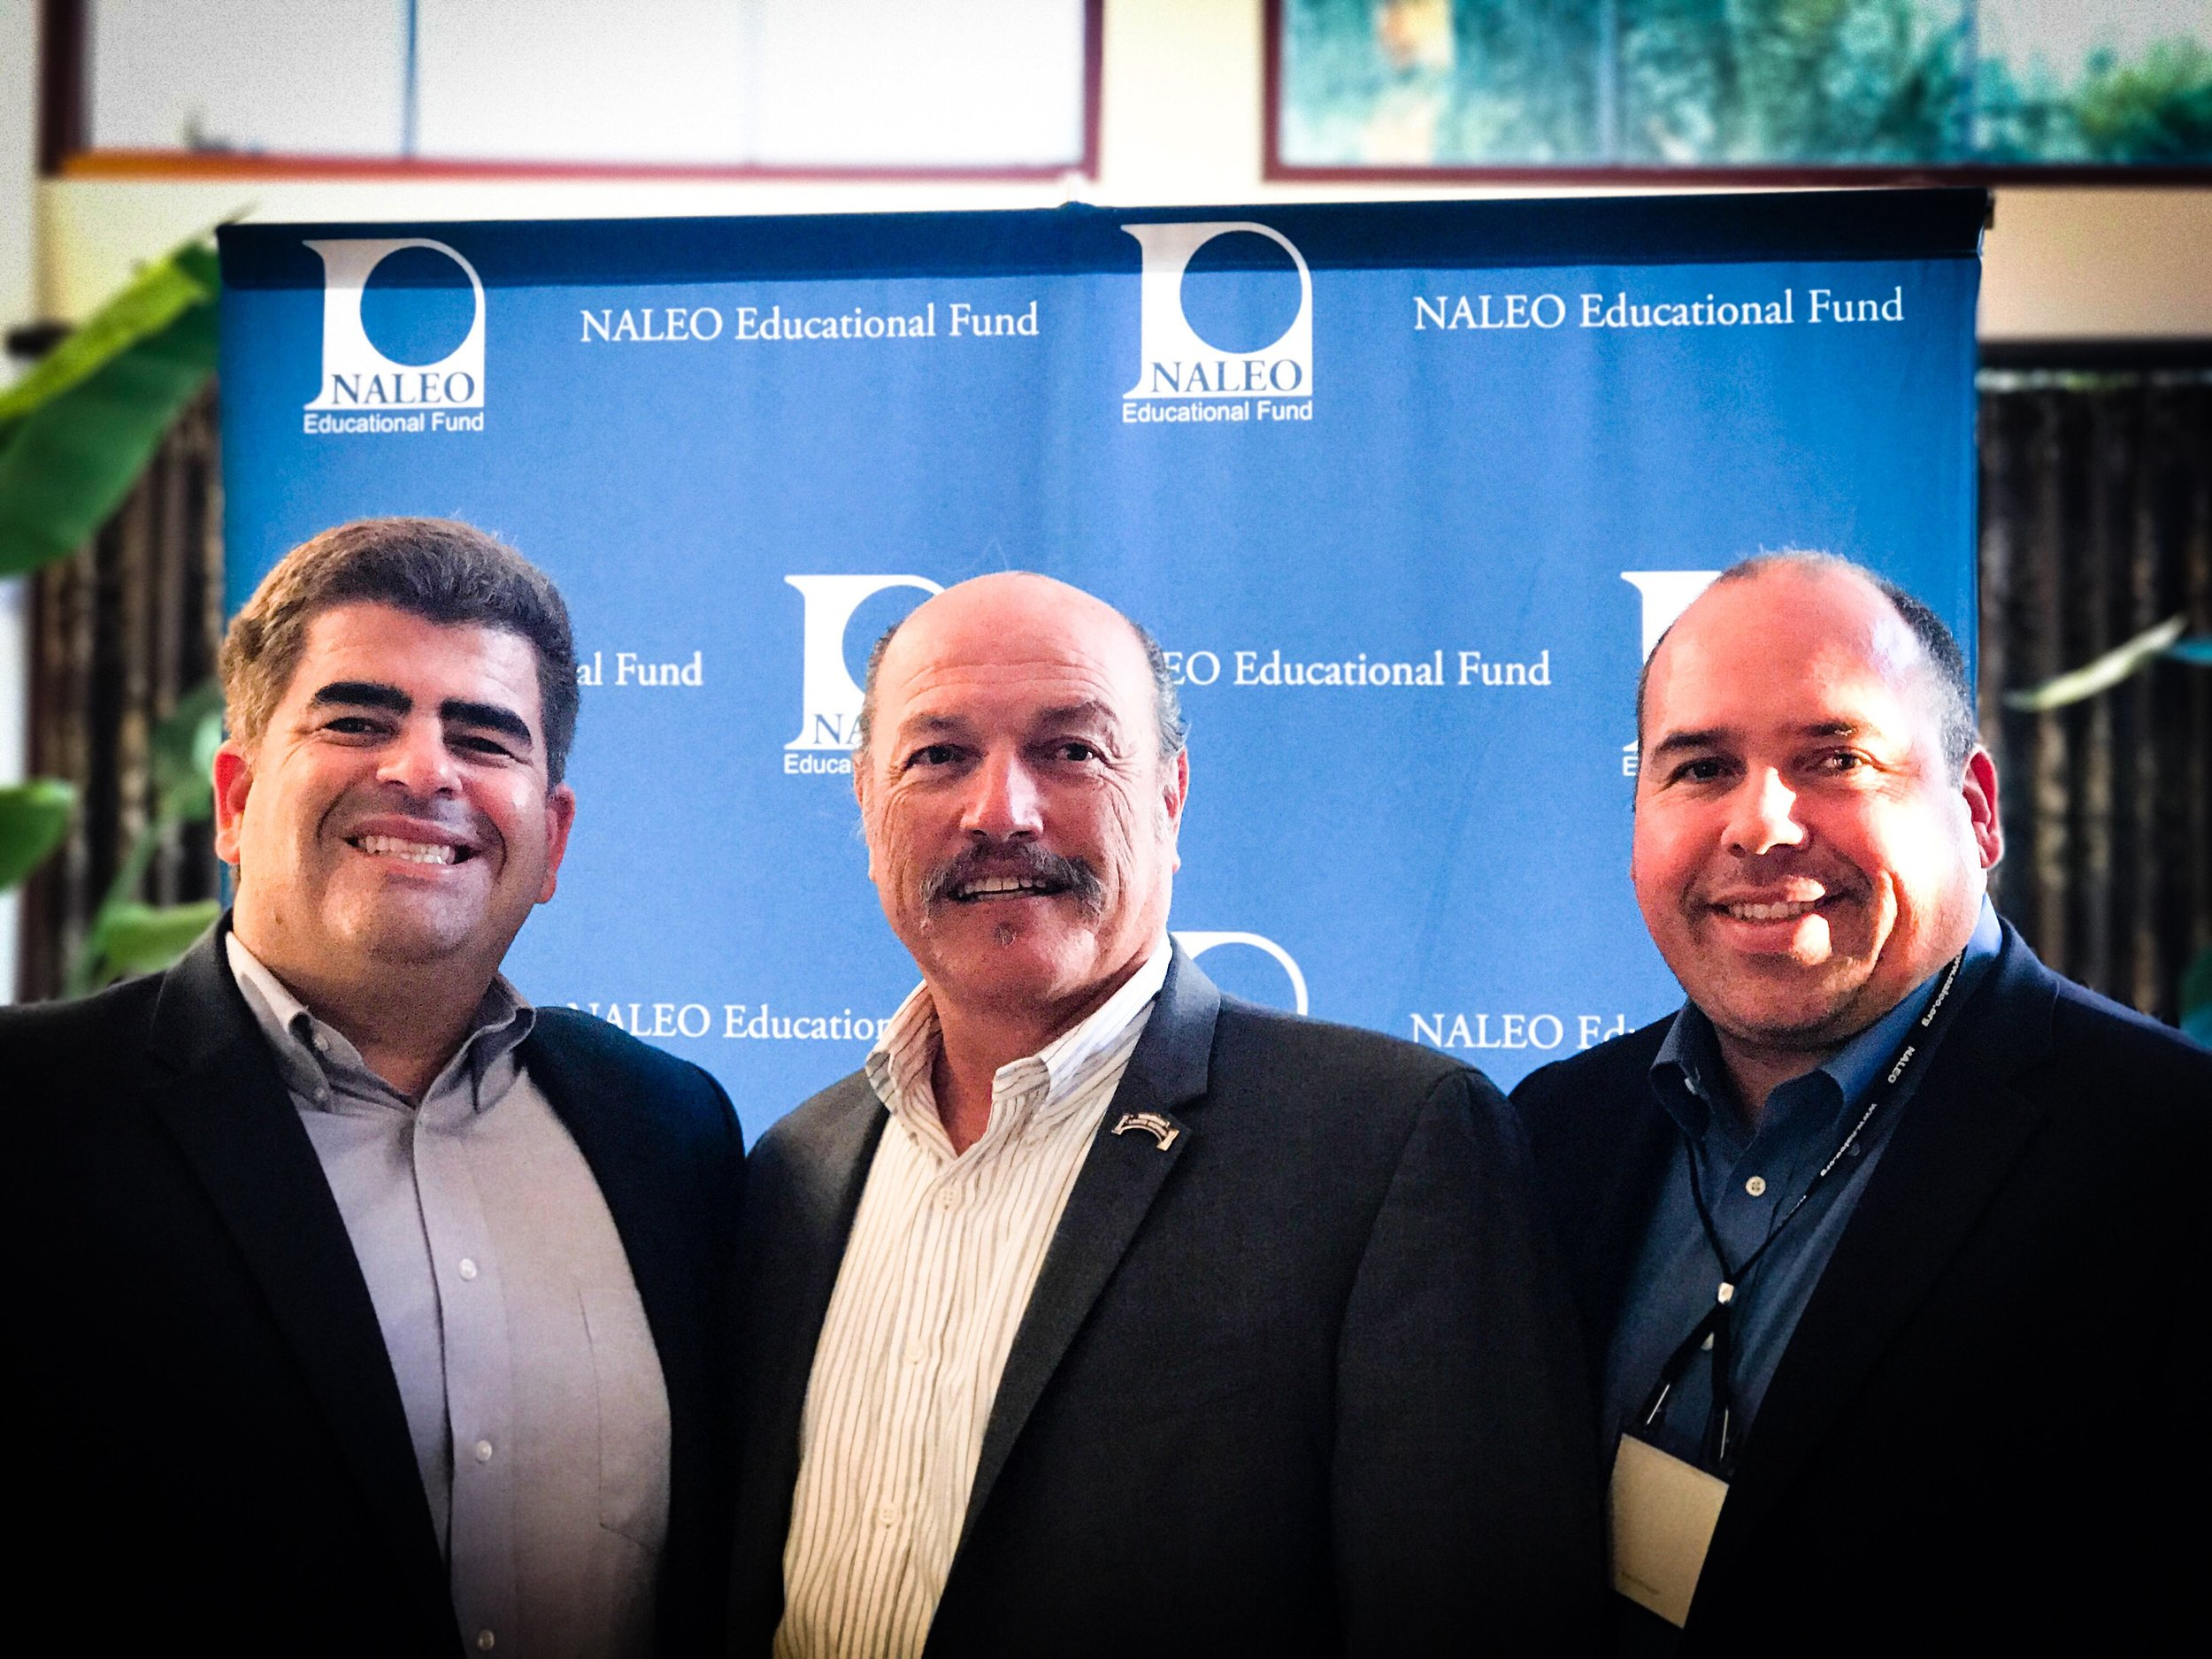 Tony with Los Angeles Community College Board Trustee Members Steve Veres and Gabriel Buelna at the NALEO Conference.